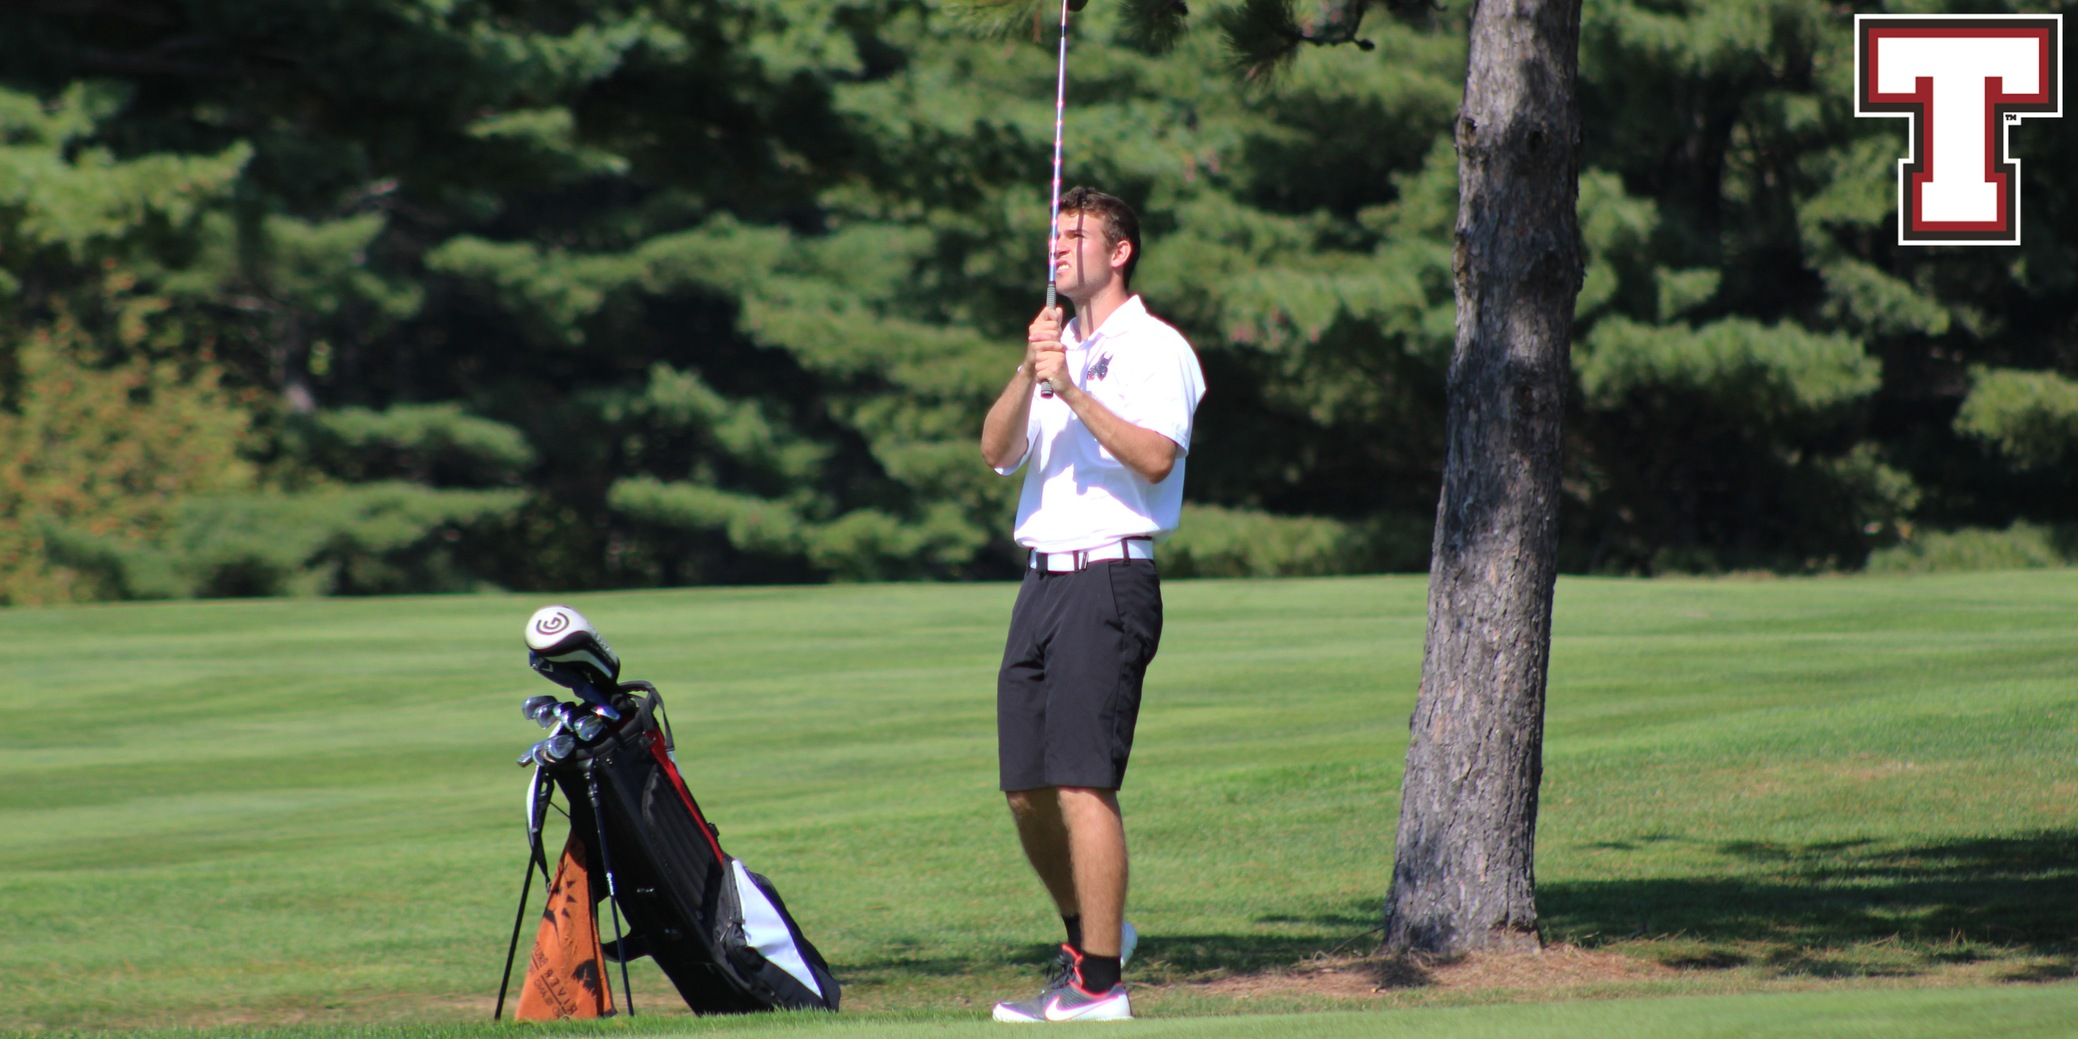 Chasse Sinks Ace as Terriers Place Fifth at Mariner Invitational